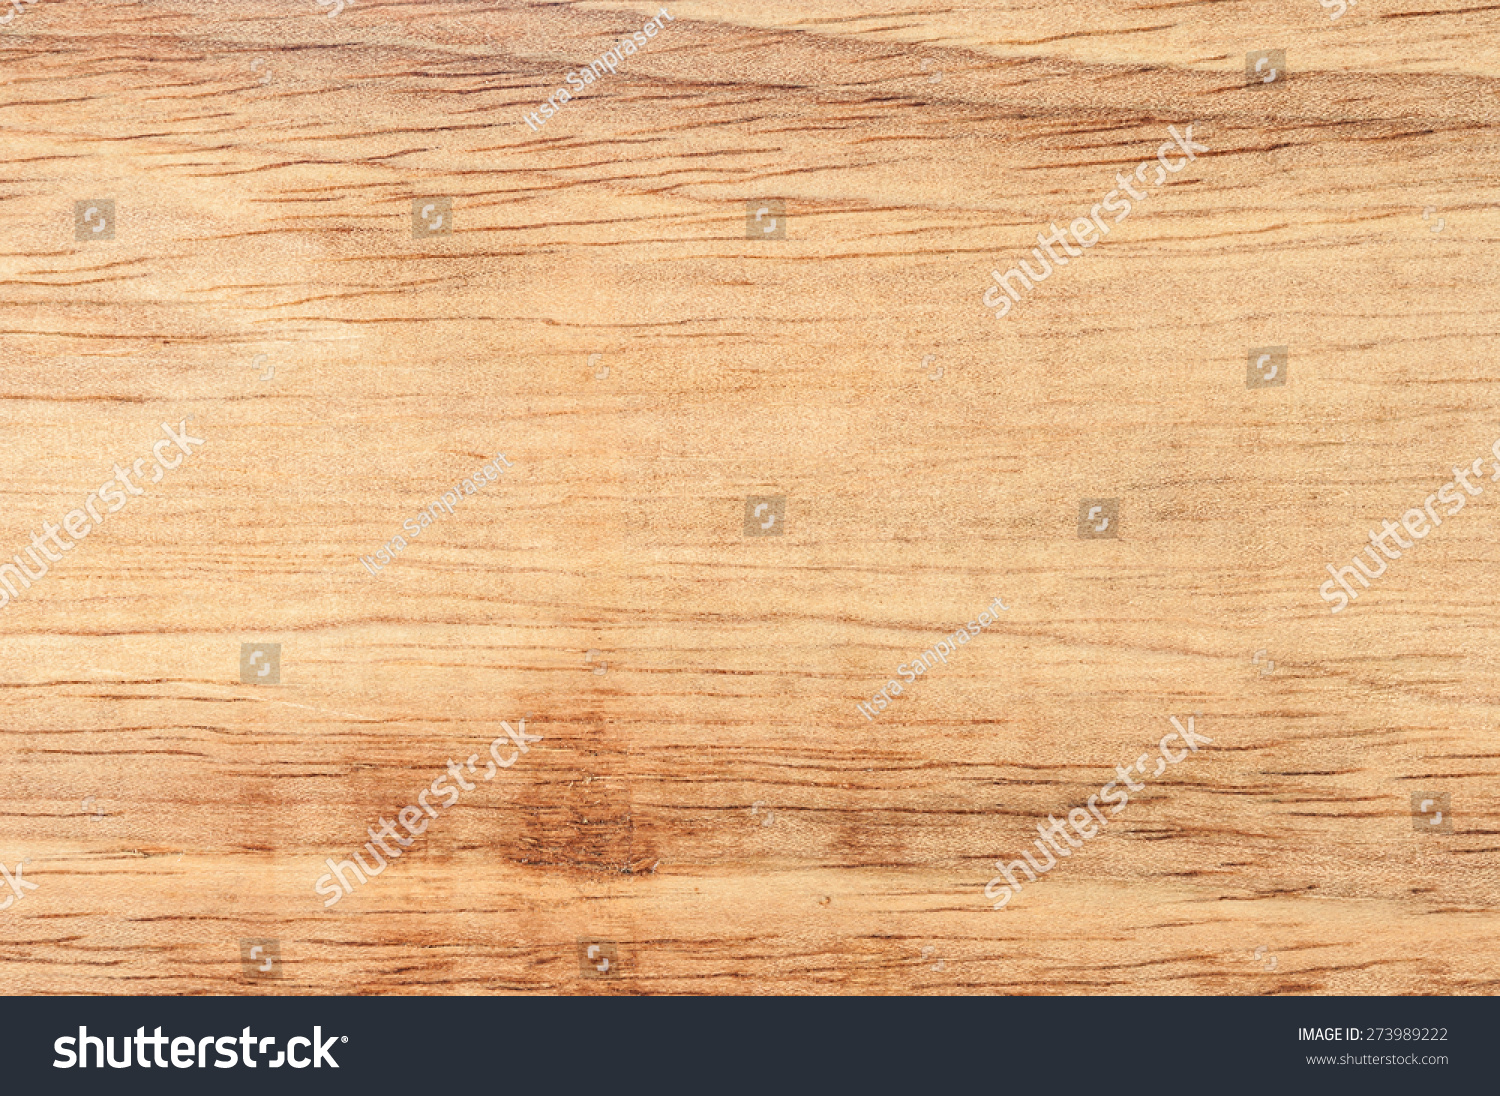 Wood texture background #273989222